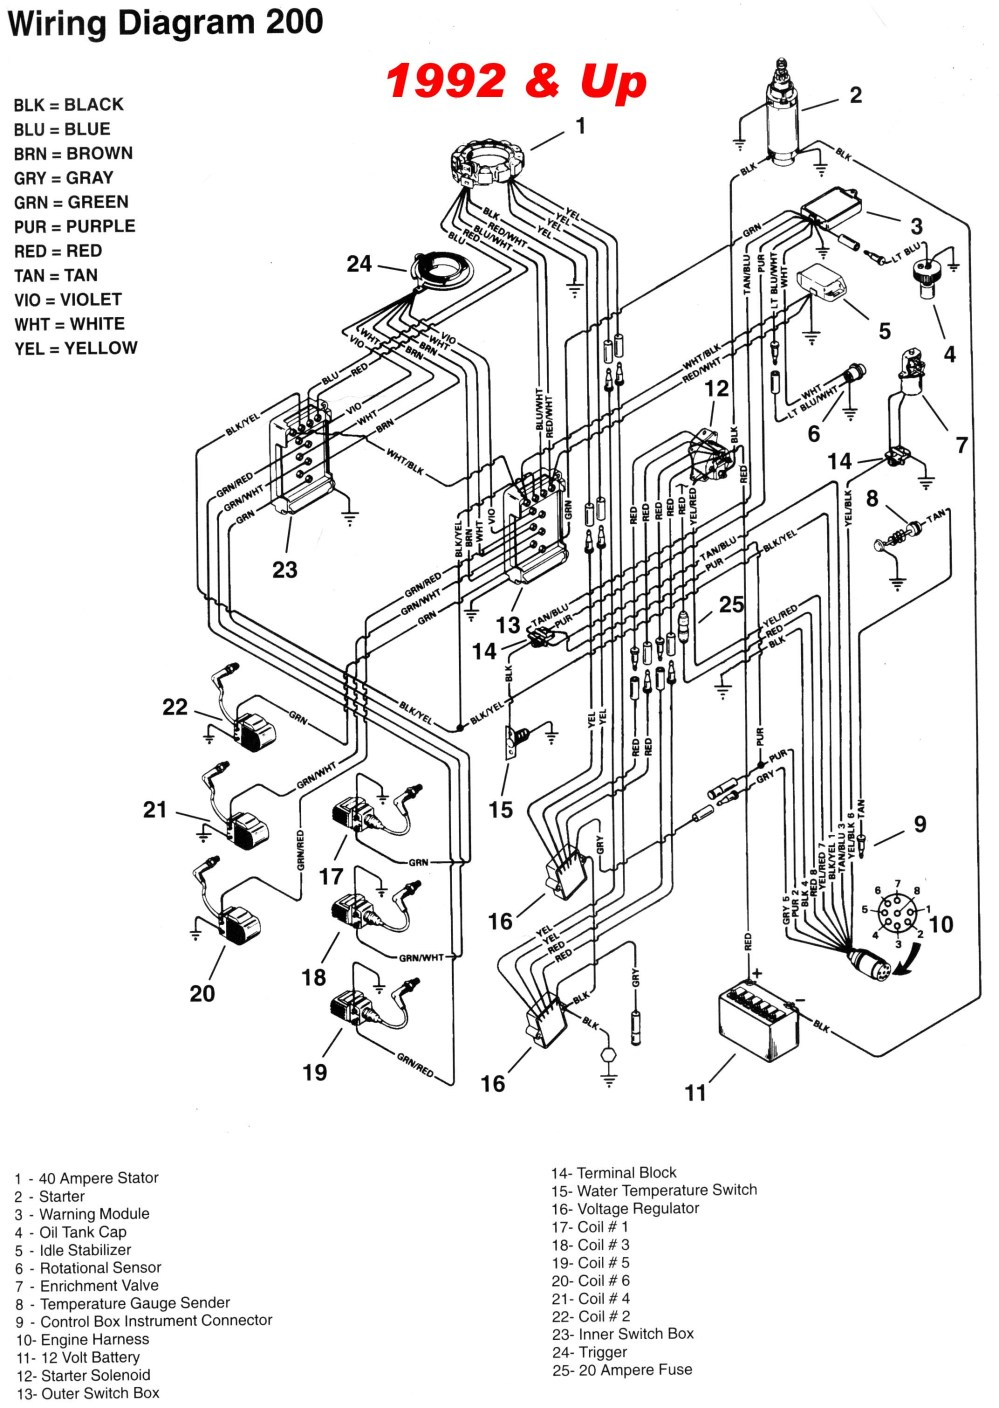 medium resolution of 2008 75 hp mercury optimax wiring diagram wiring diagram third level 90 mercury outboard wiring diagram mercury black max 150 wiring diagram free picture